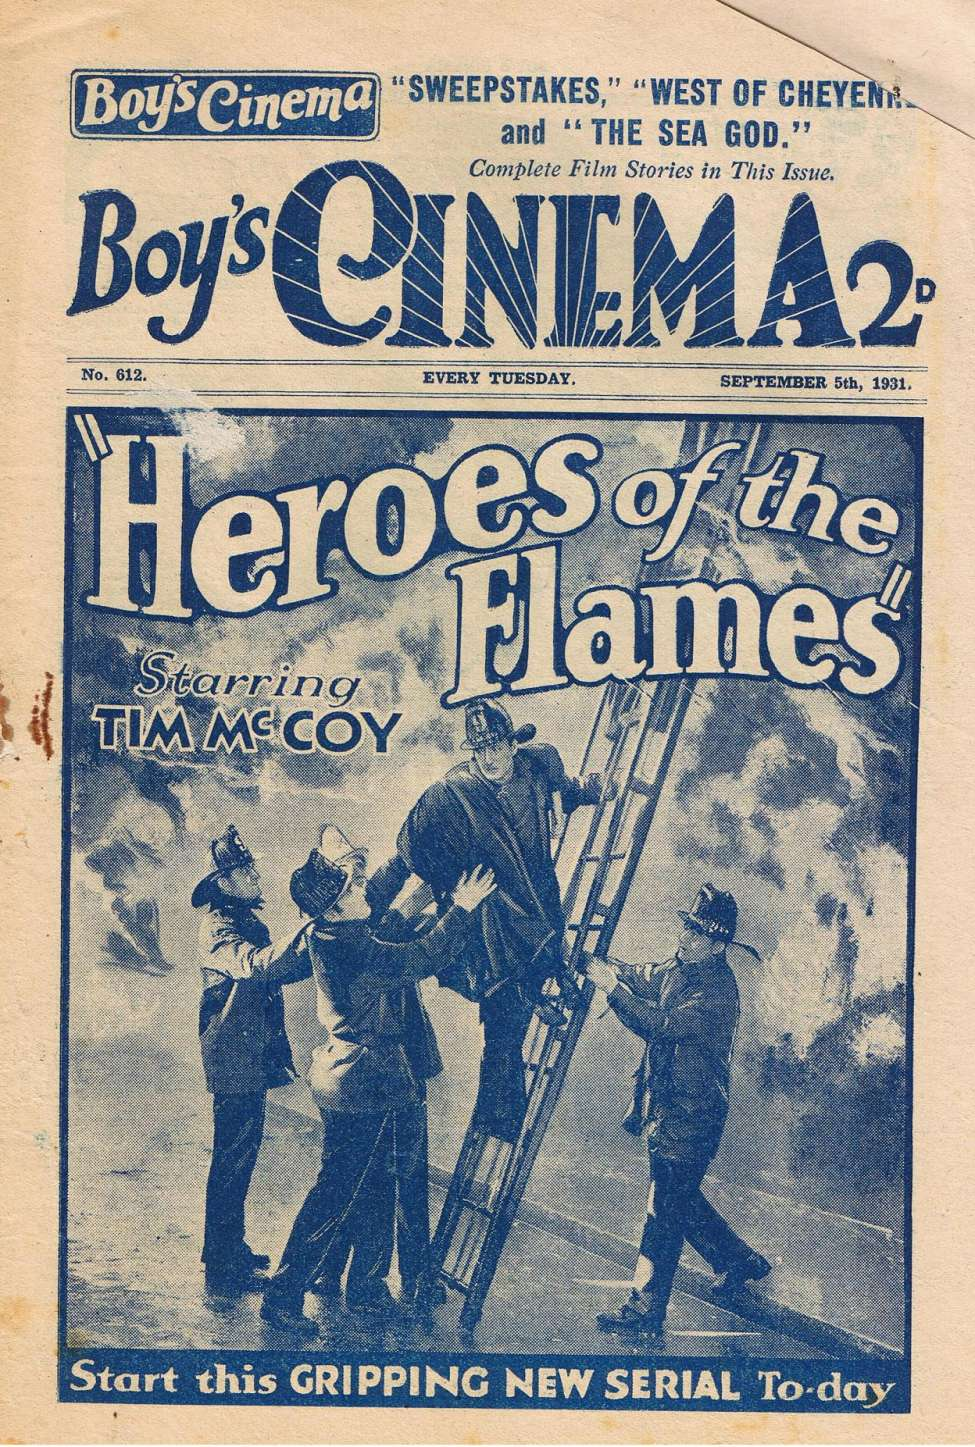 Comic Book Cover For Boy's Cinema 0612 - Heroes of the Flames starring Tim McCoy